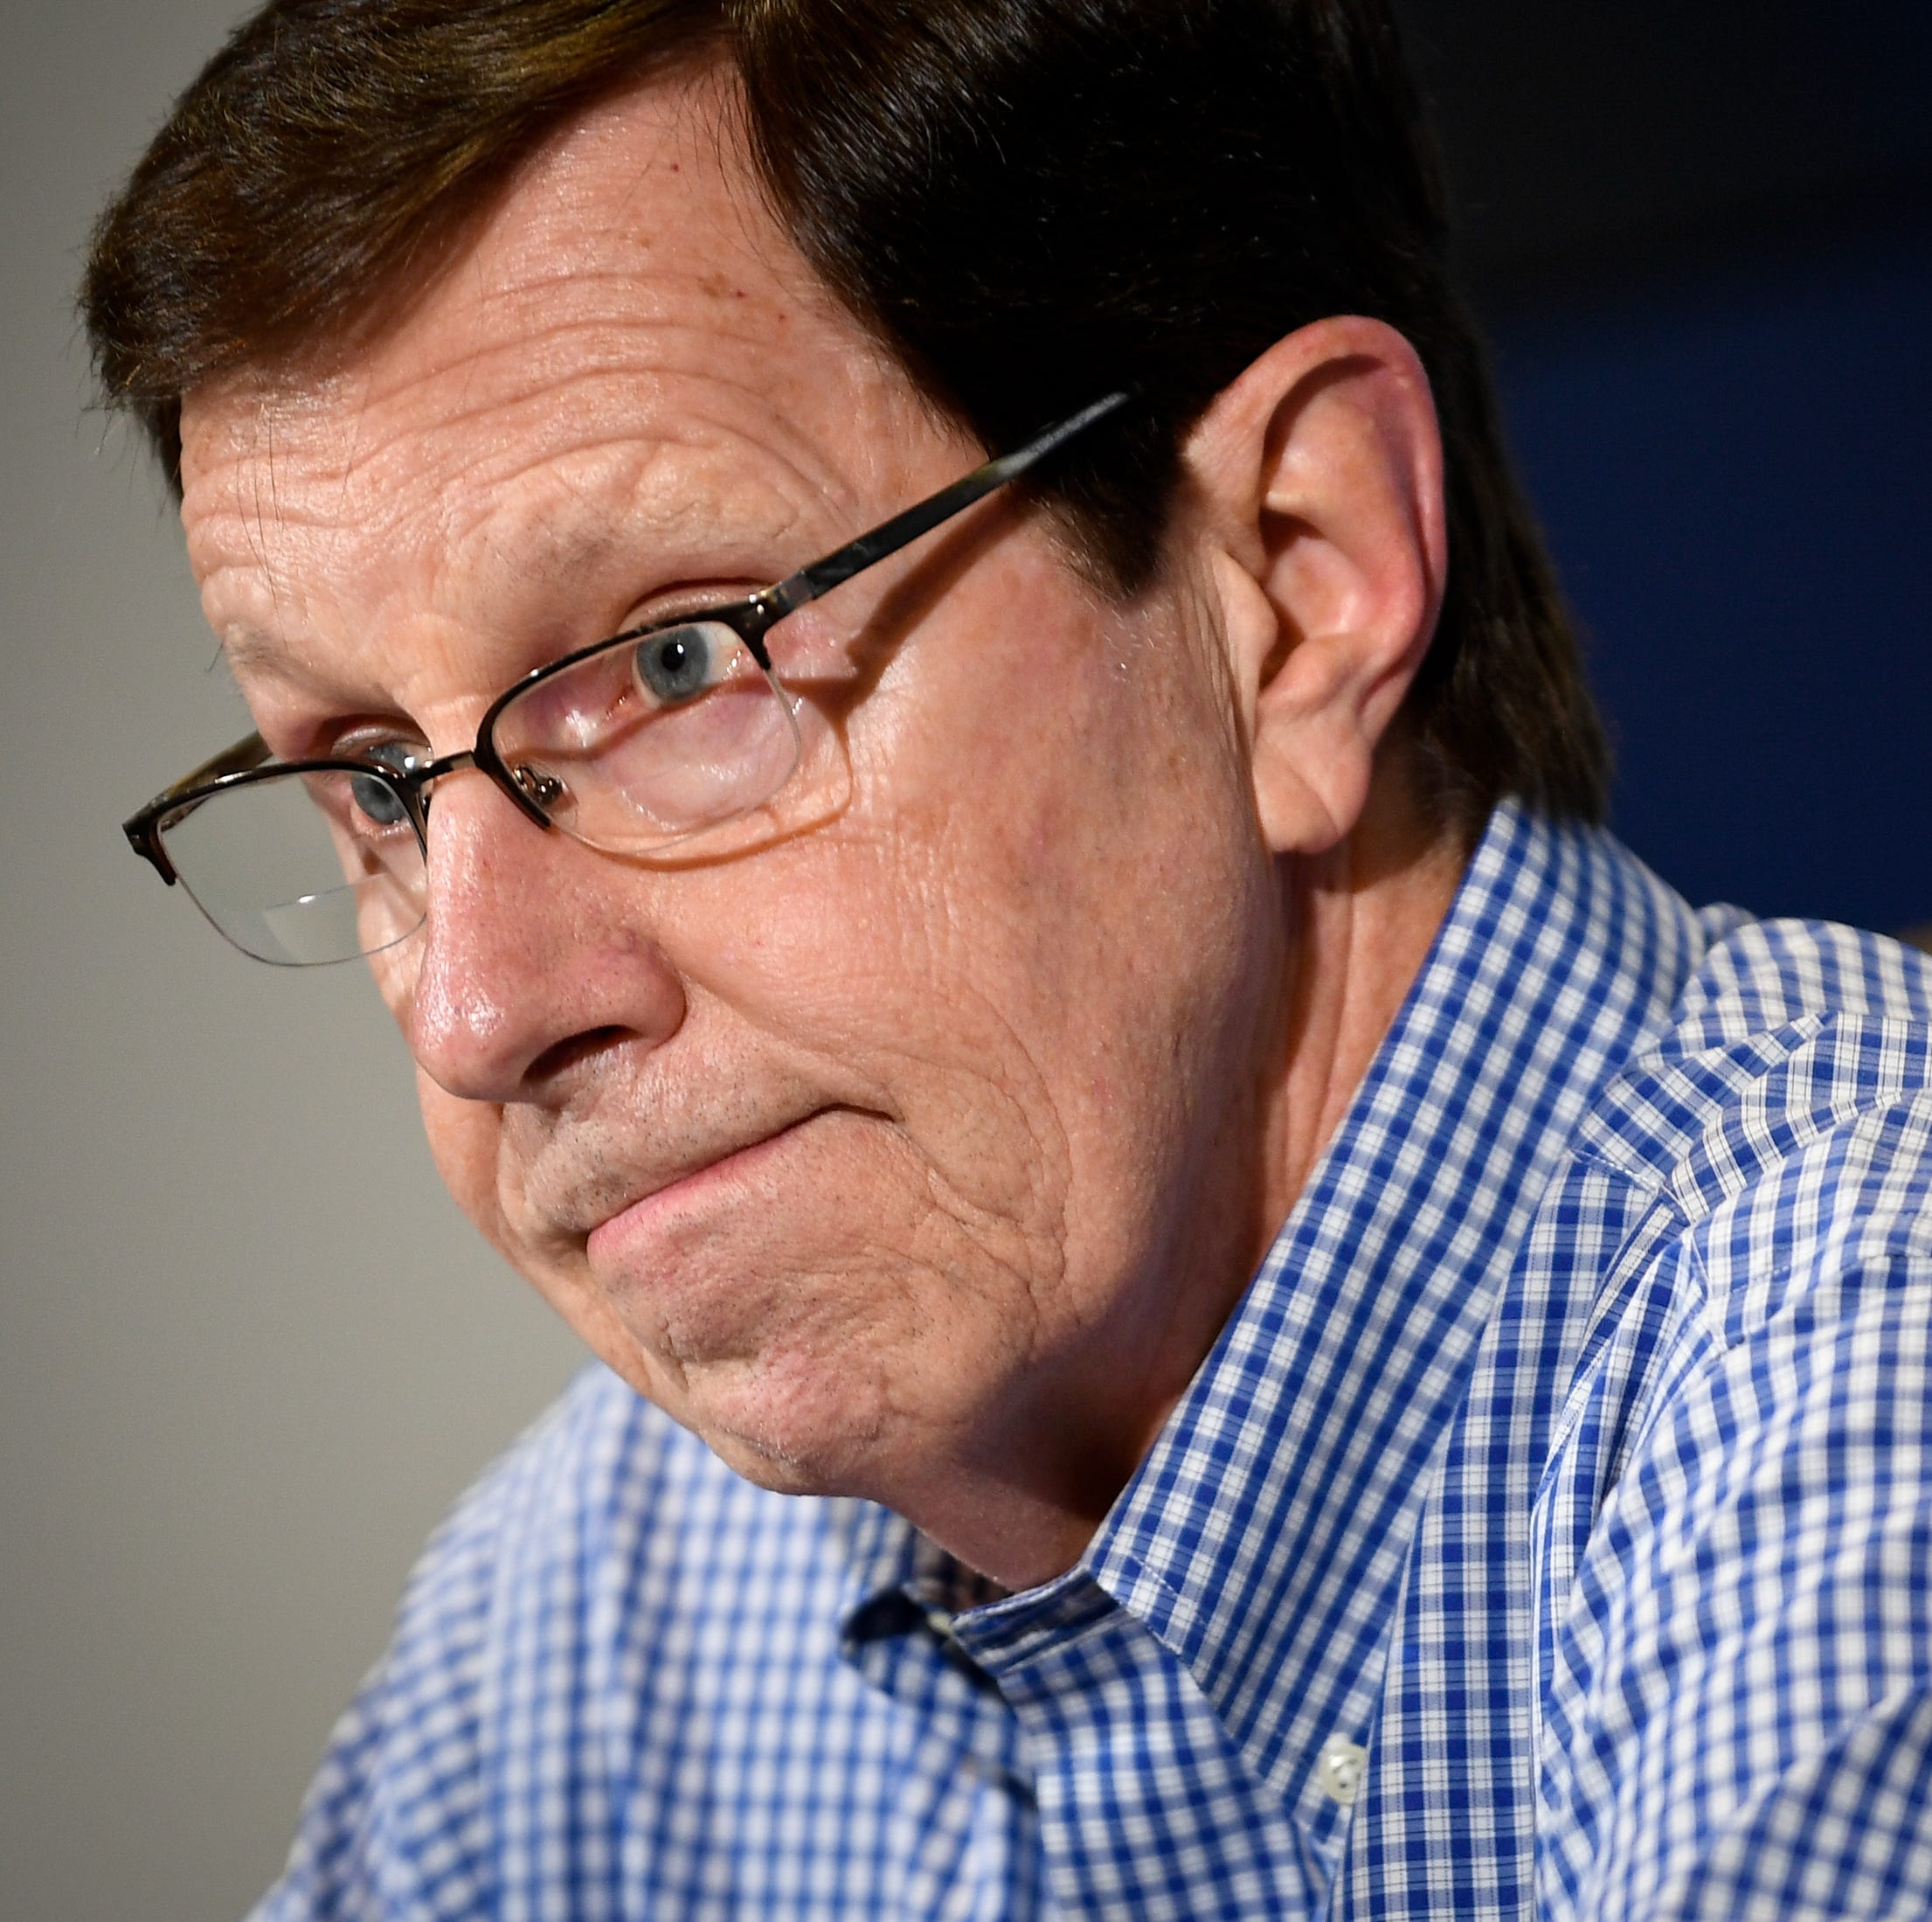 Predators changes coming, David Poile says